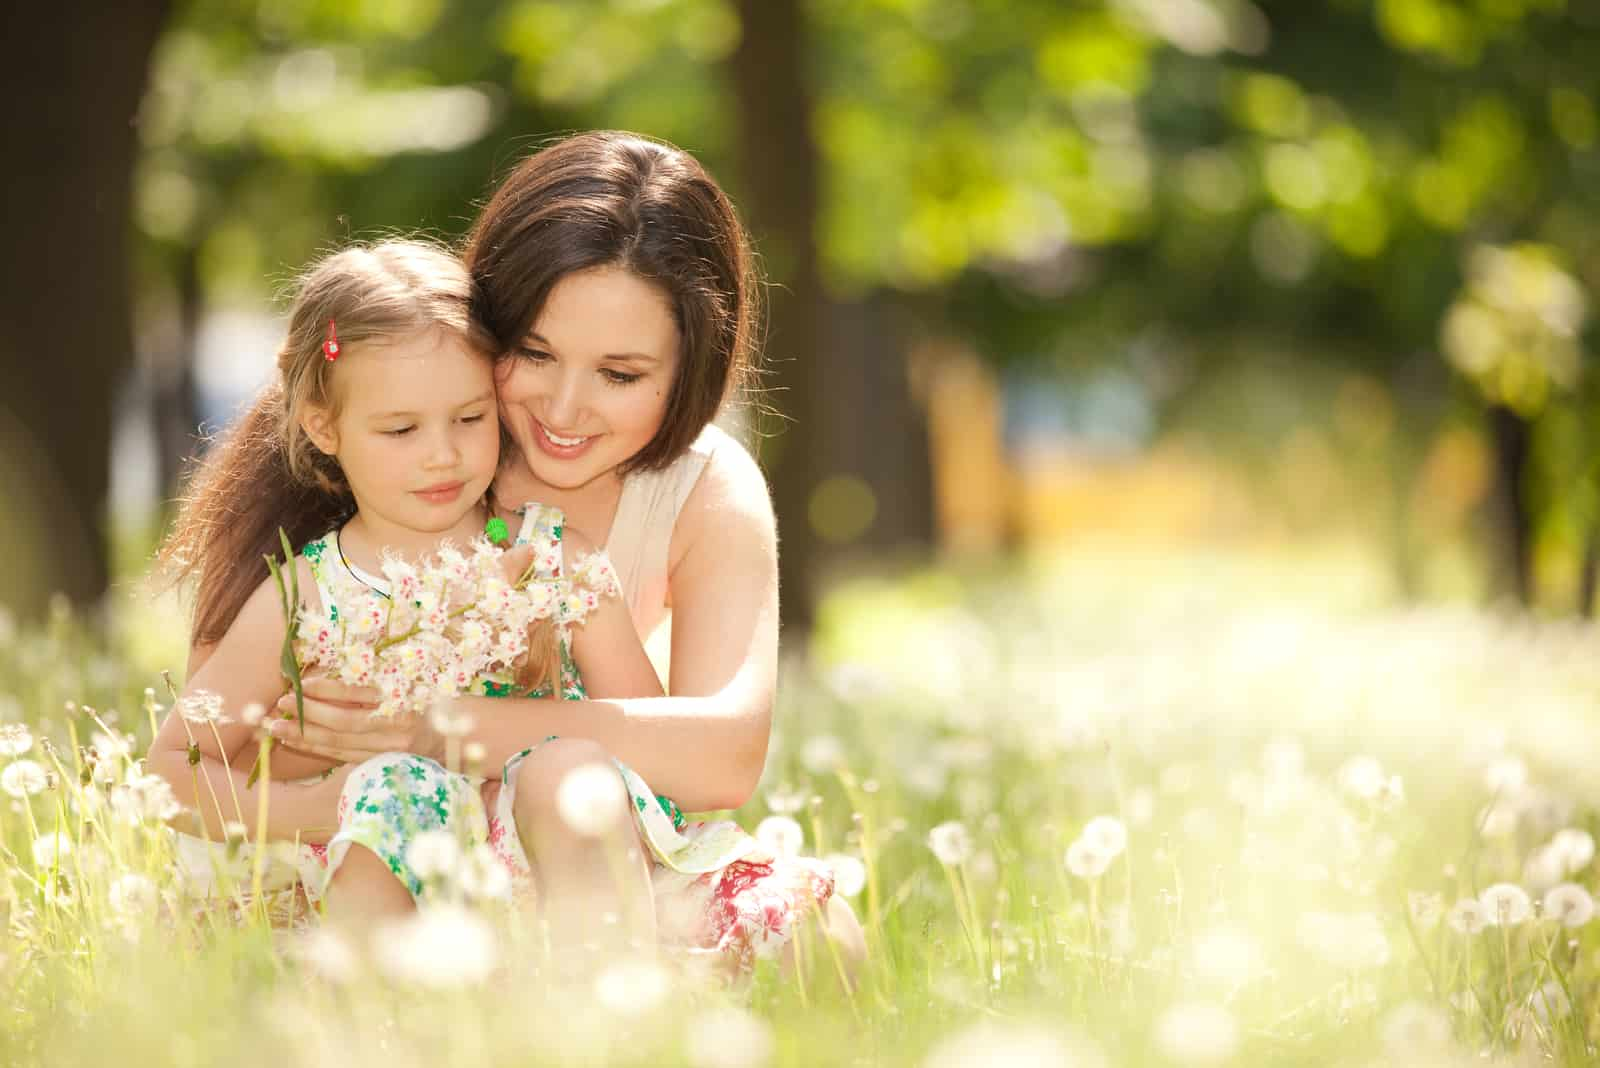 a woman sitting in the grass with a child